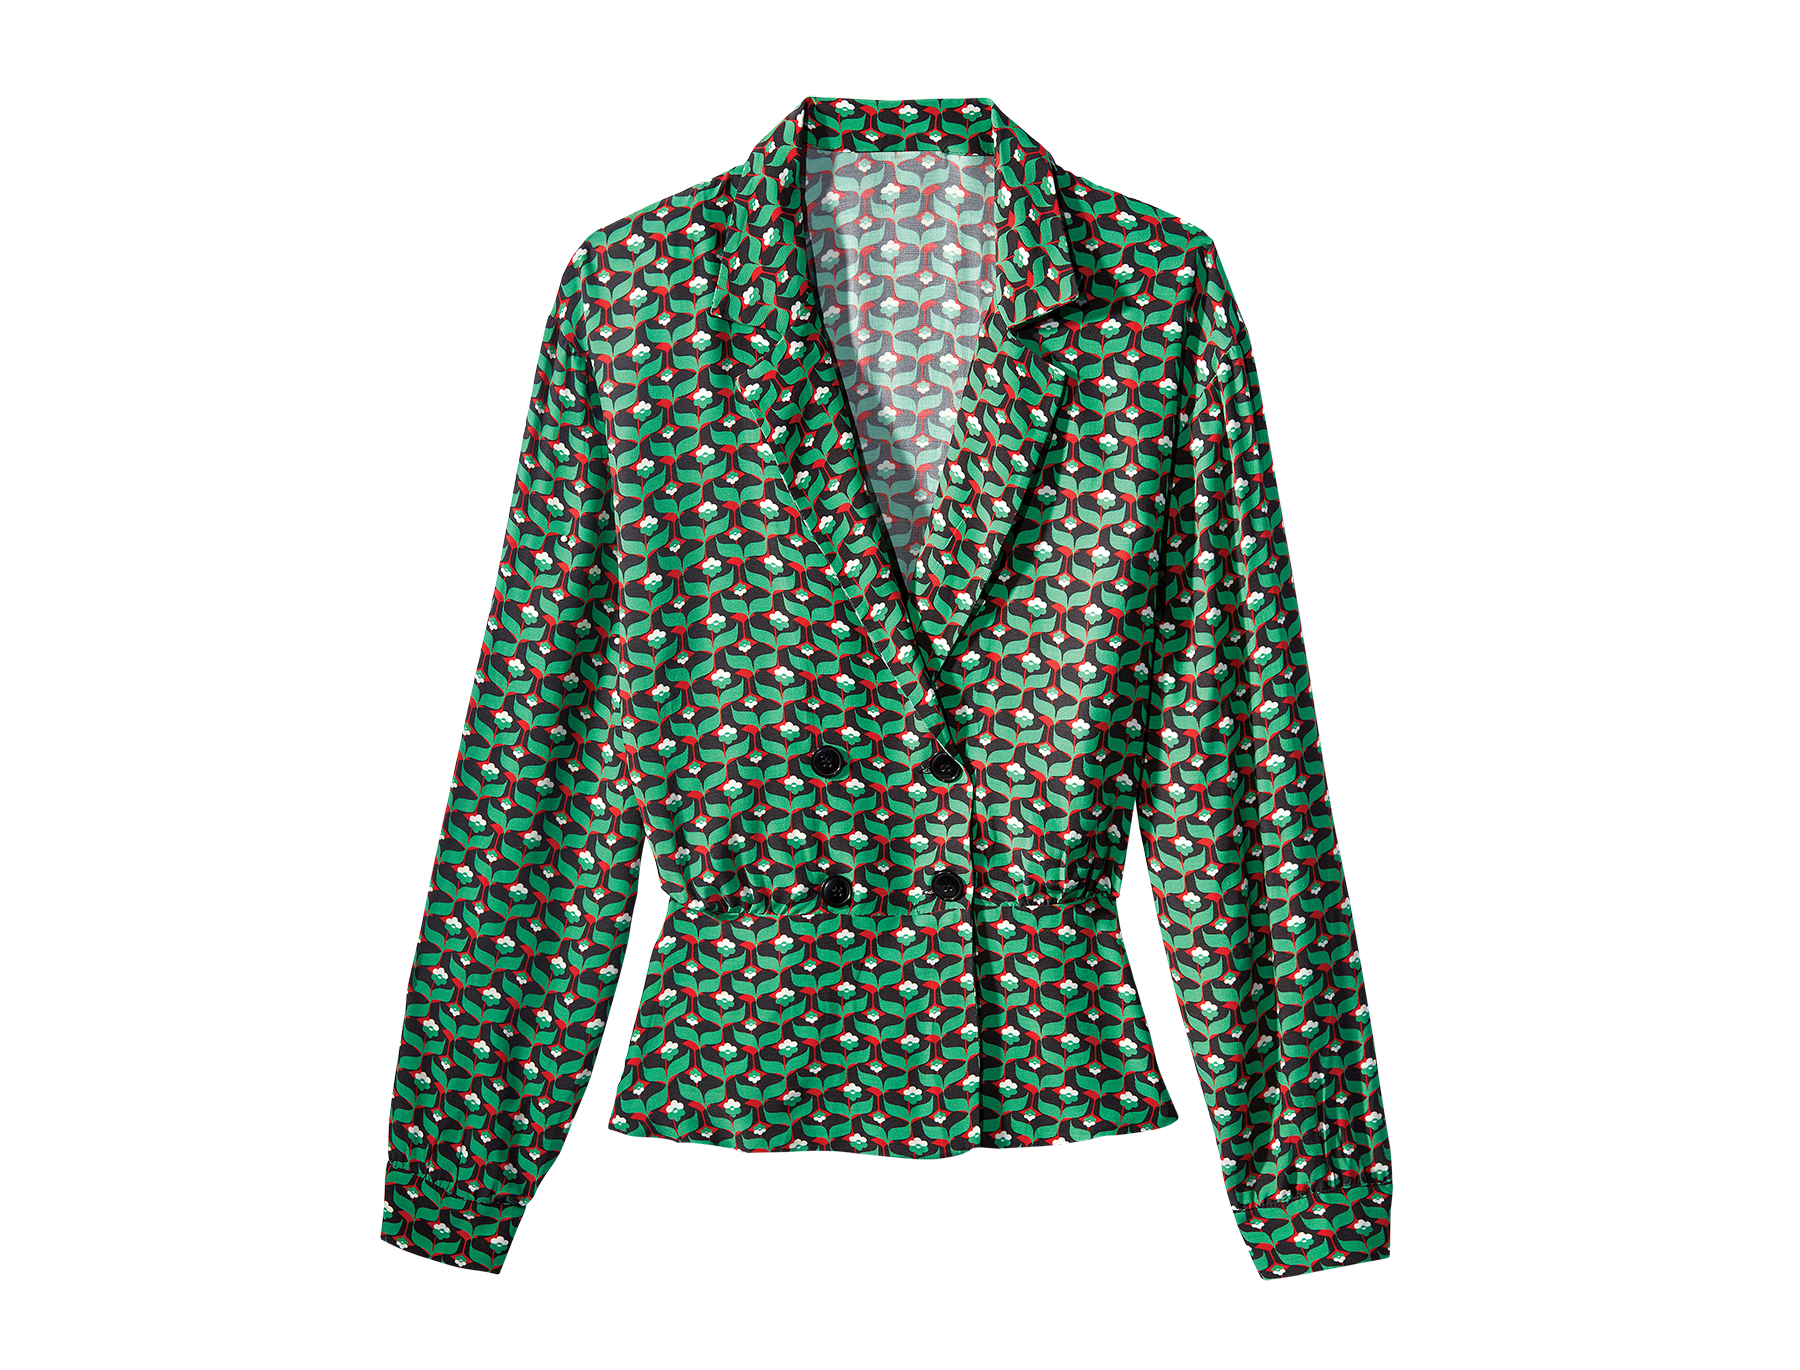 Double-breasted H&M patterned jacket